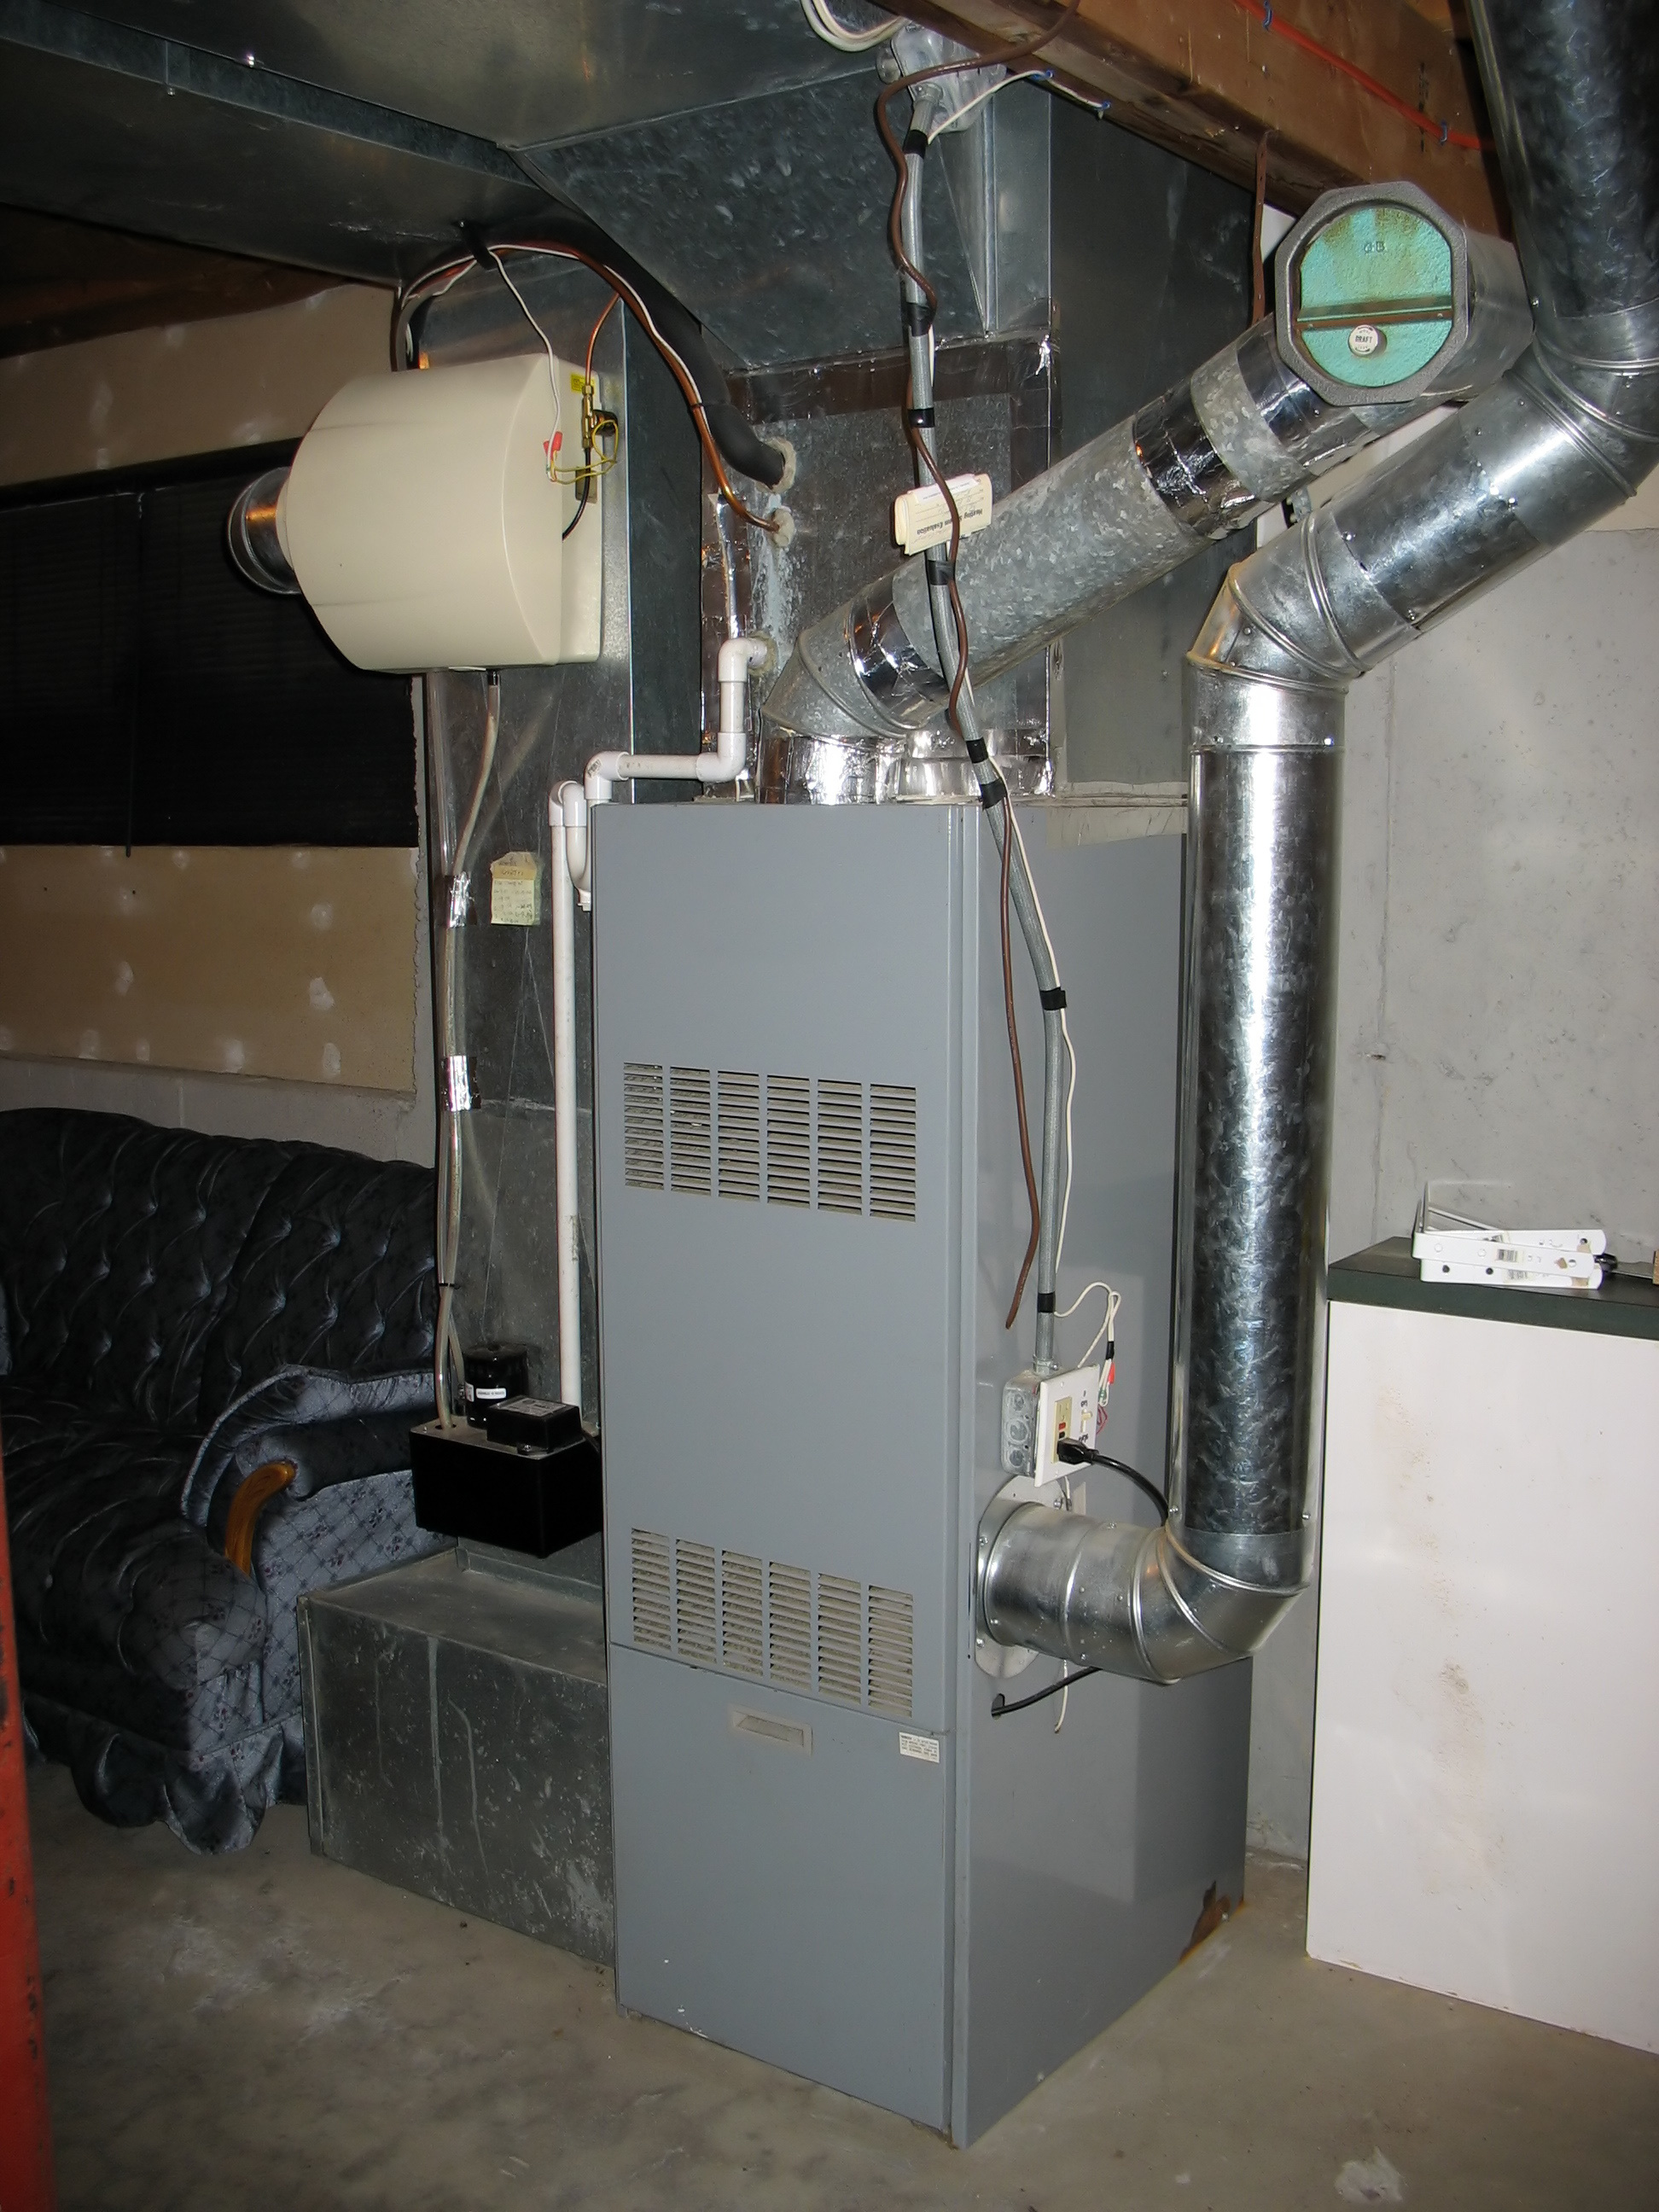 heater service in Spokane, WA